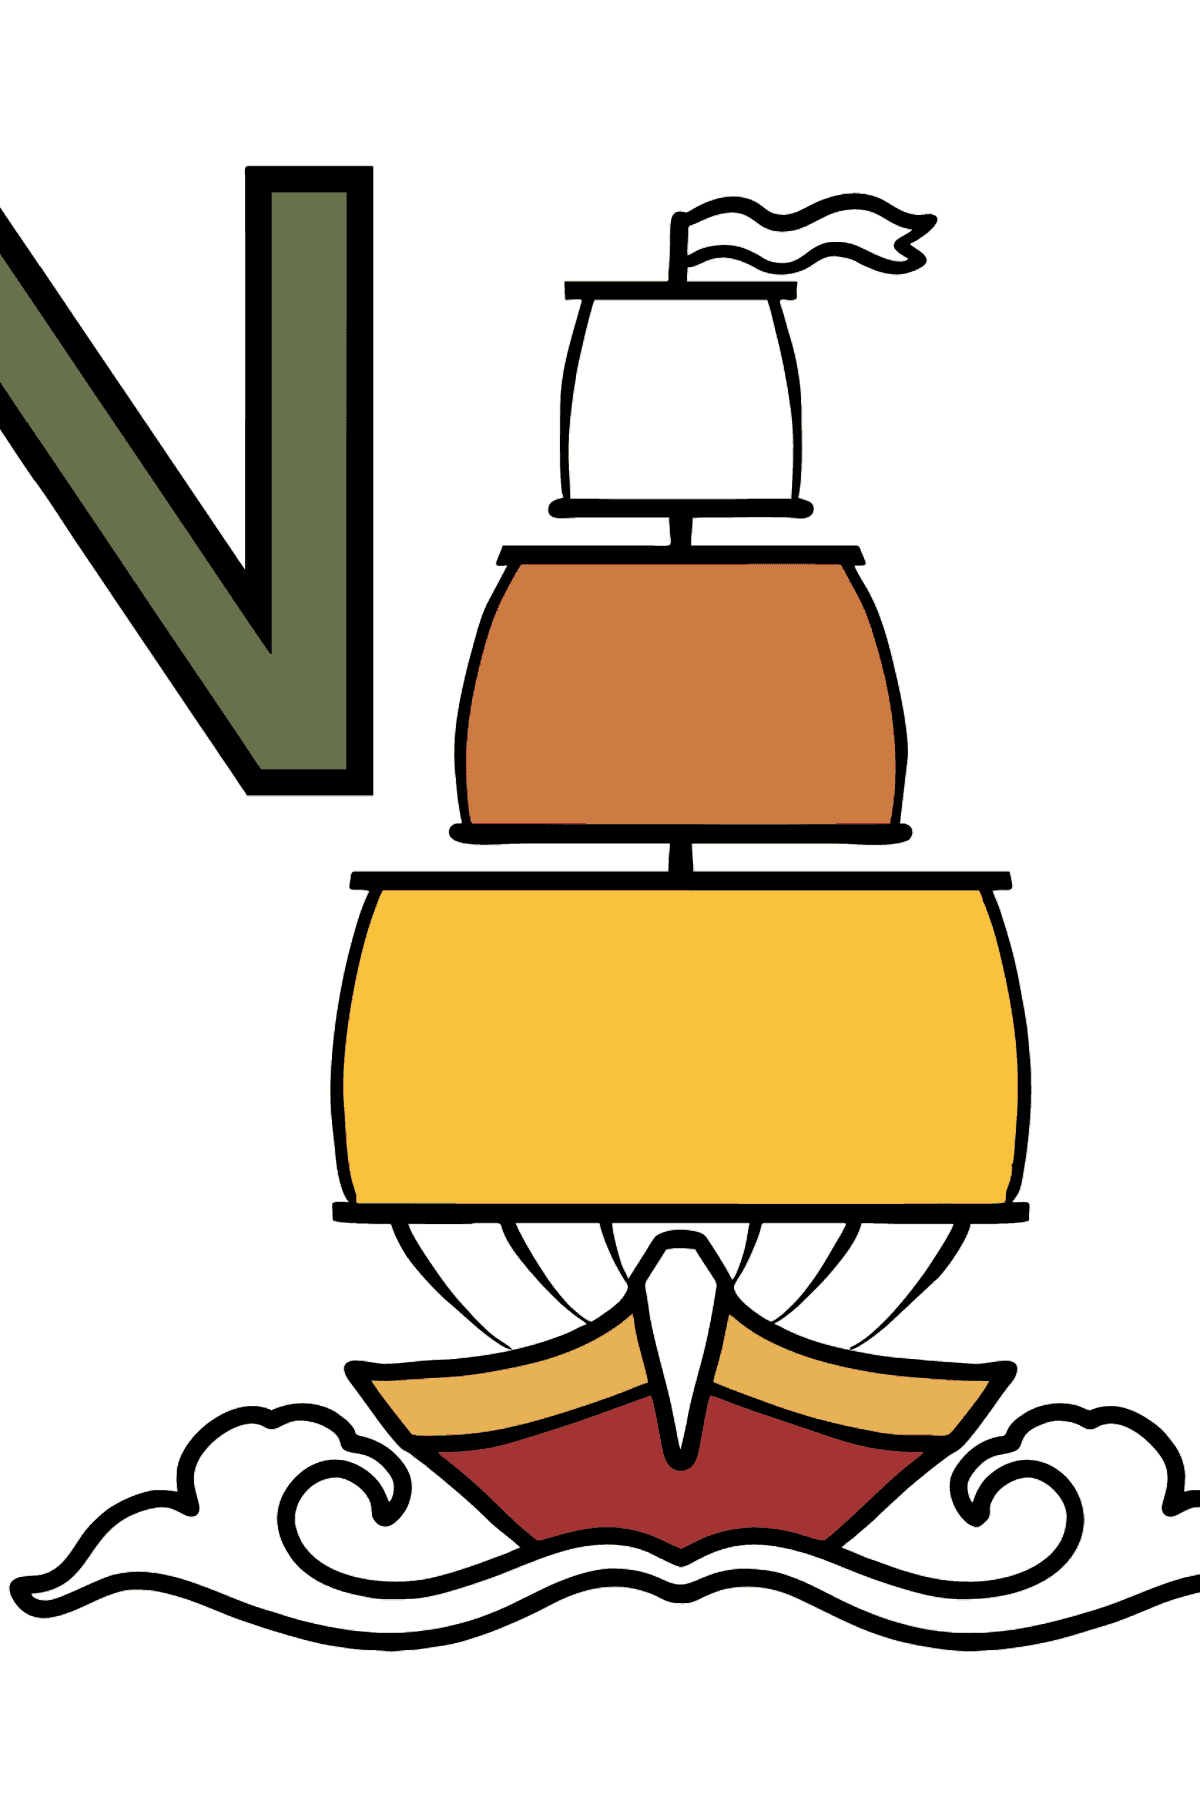 Portuguese Letter N coloring pages - NAVIO - Coloring Pages for Kids